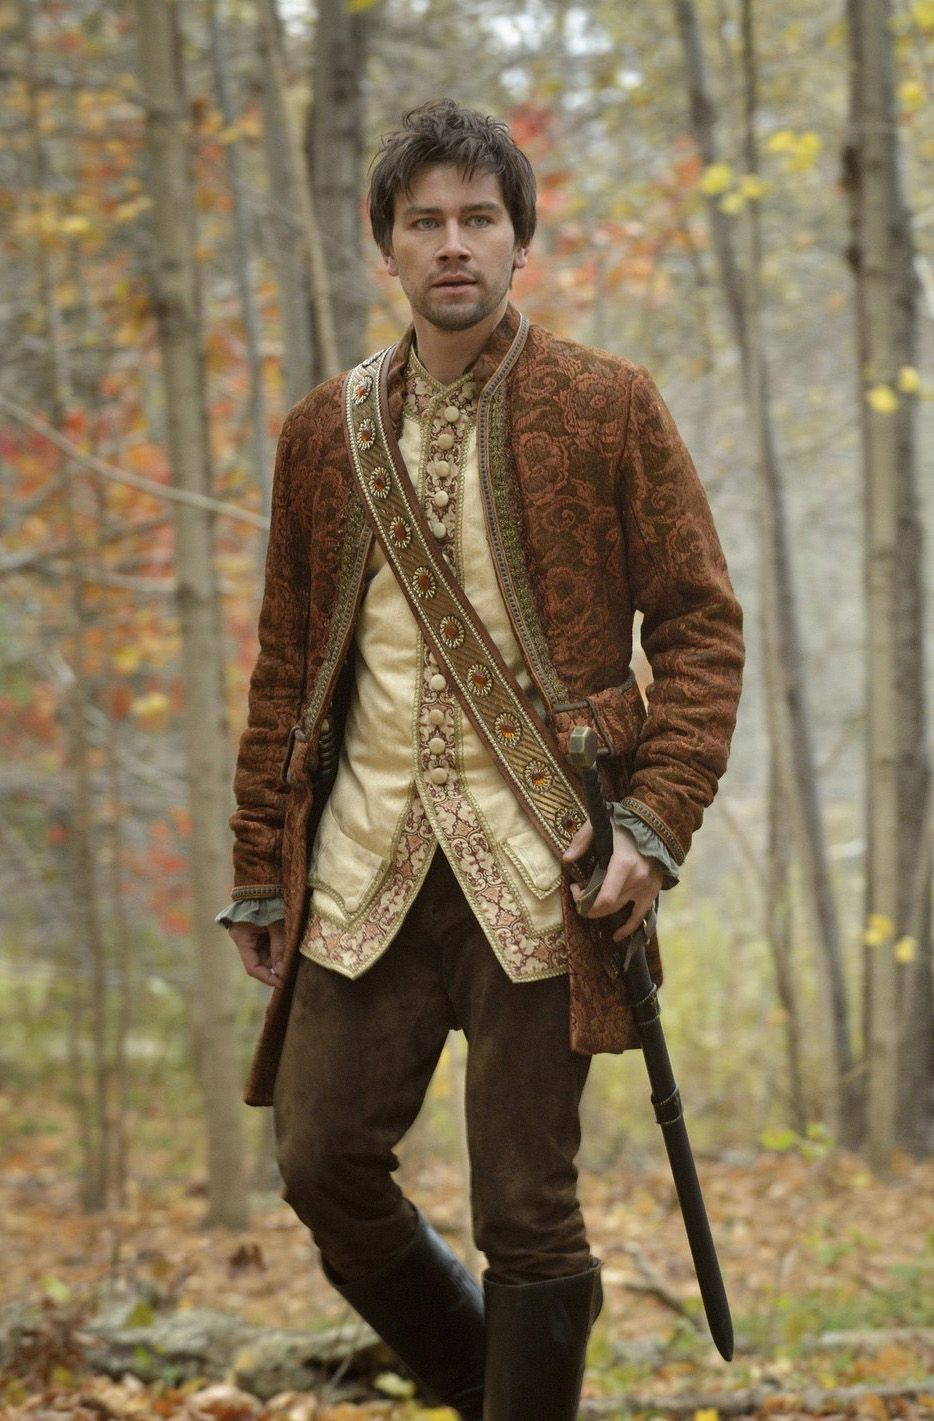 Reign Season 4 On Netflix: This Is Close To What I Throw On Whenever I Need To Run